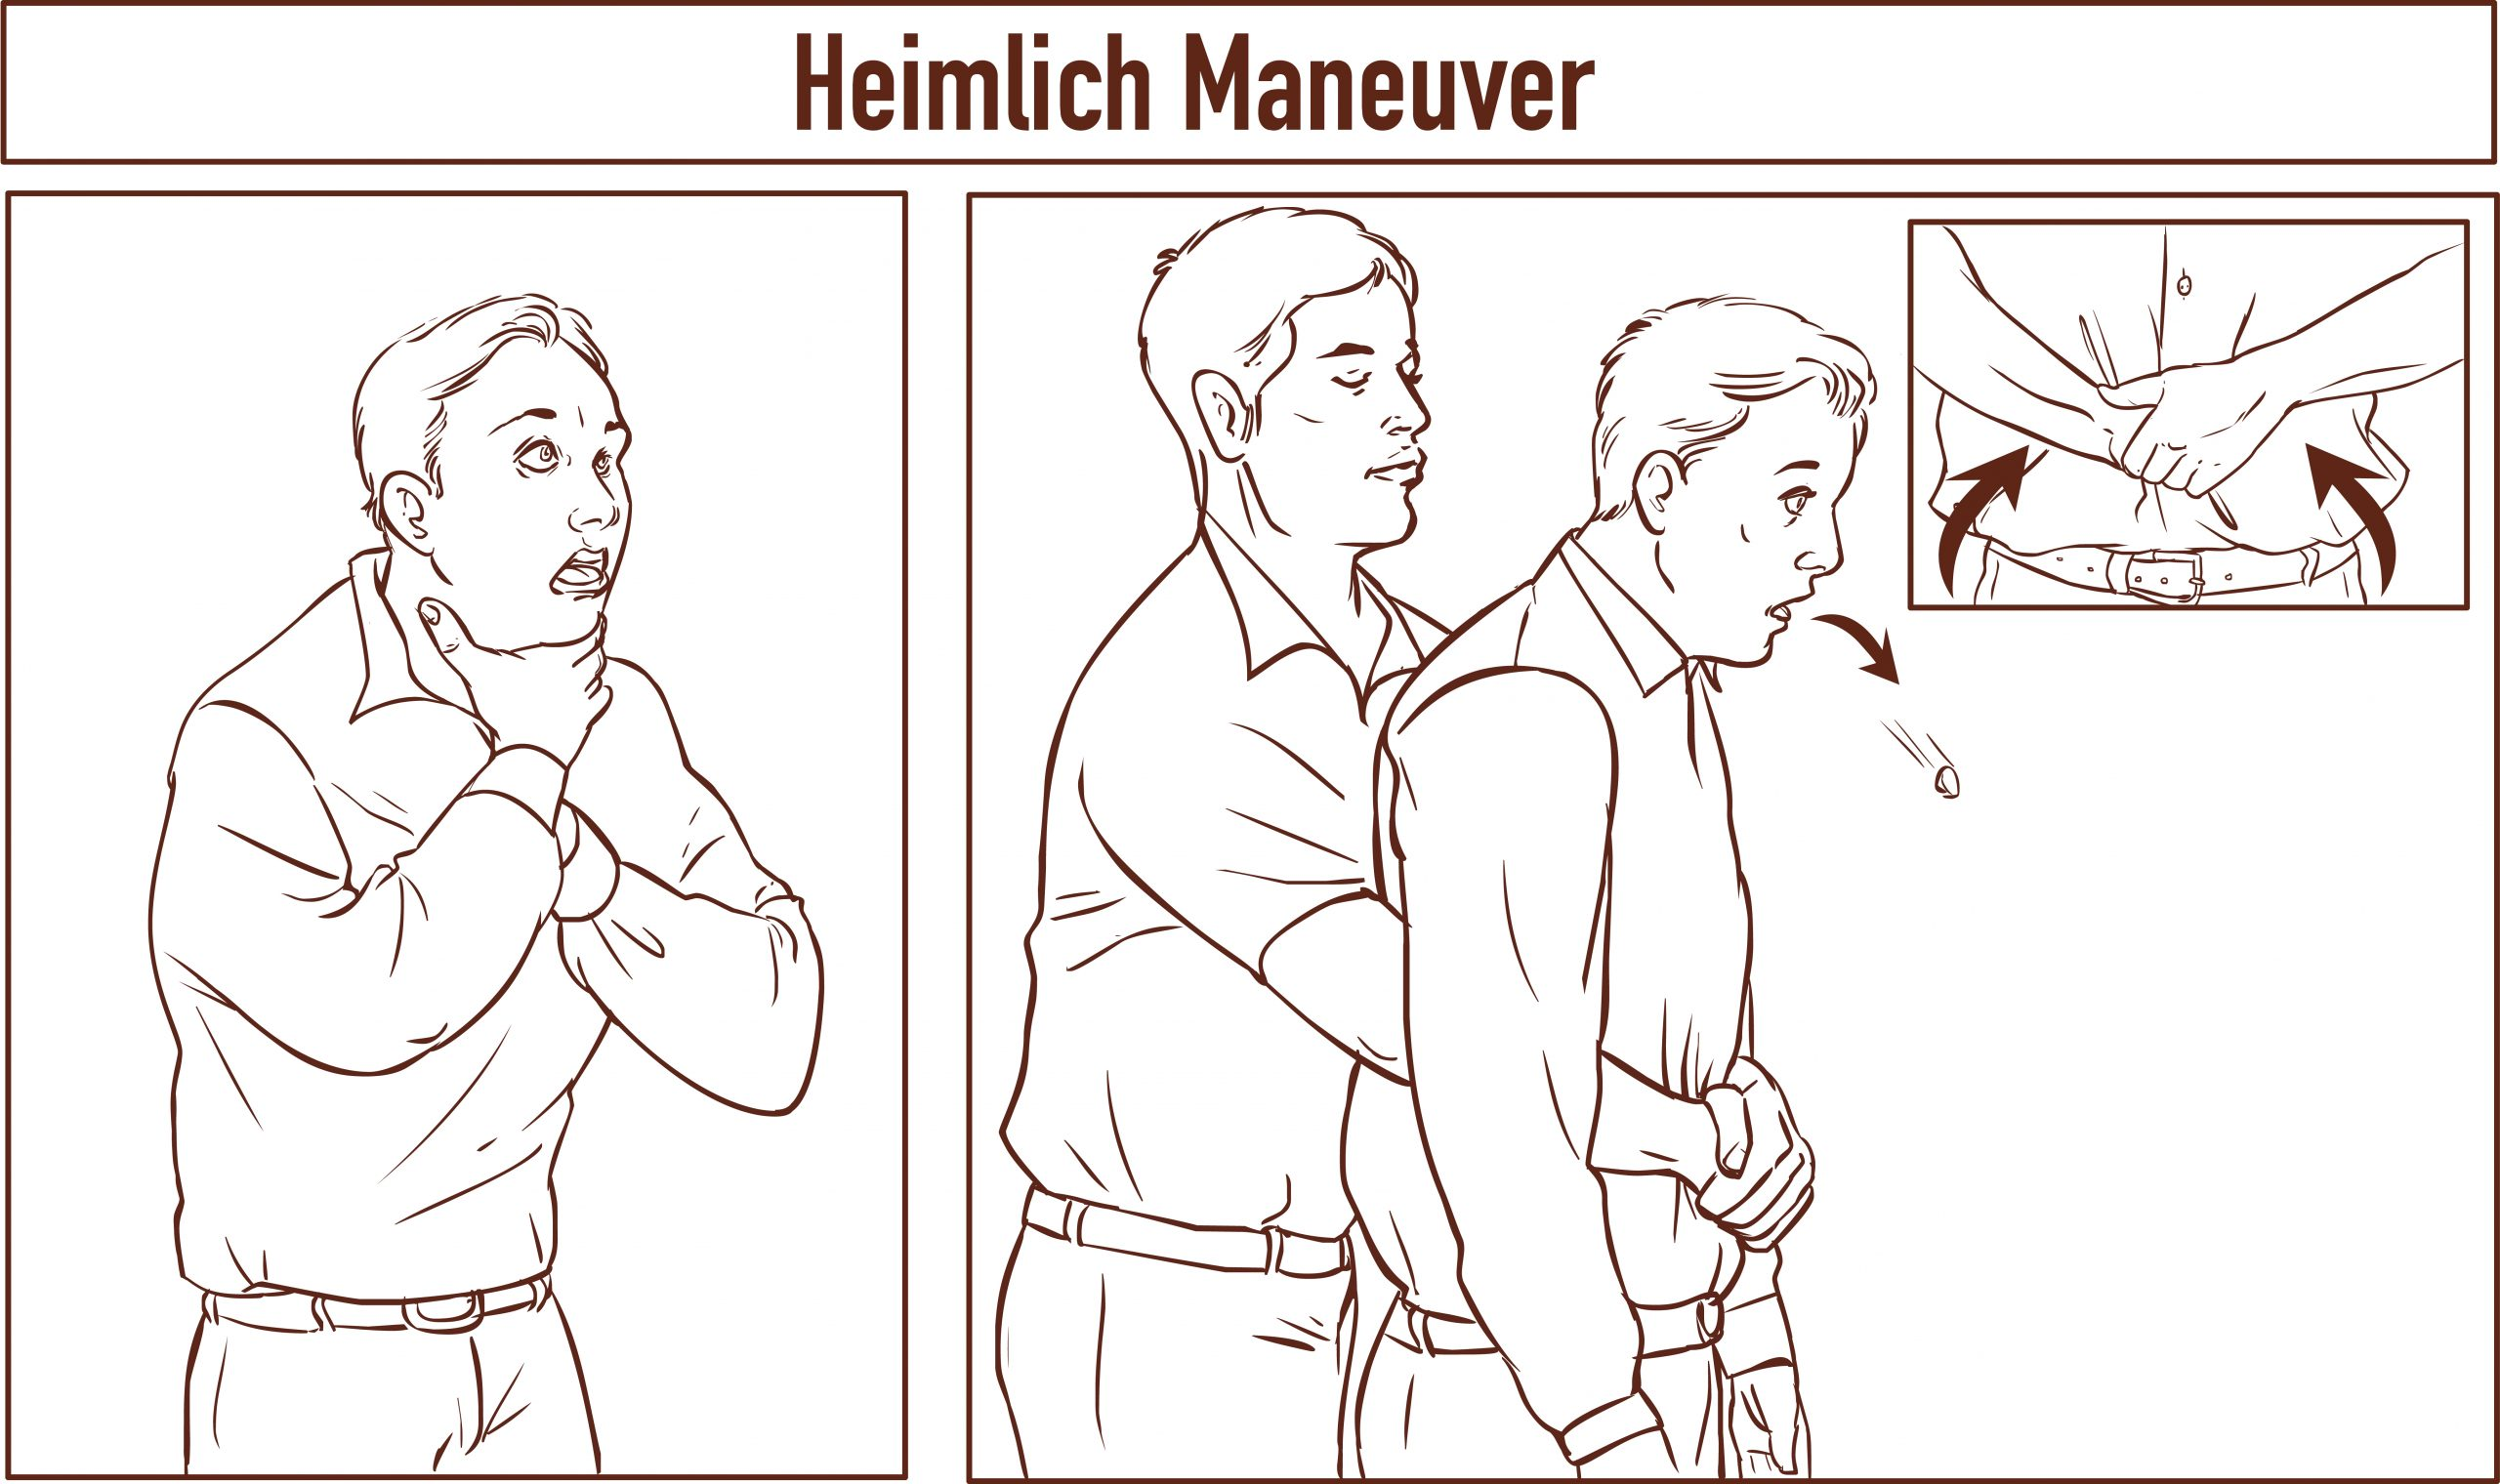 illustration of Heimlich Maneuver